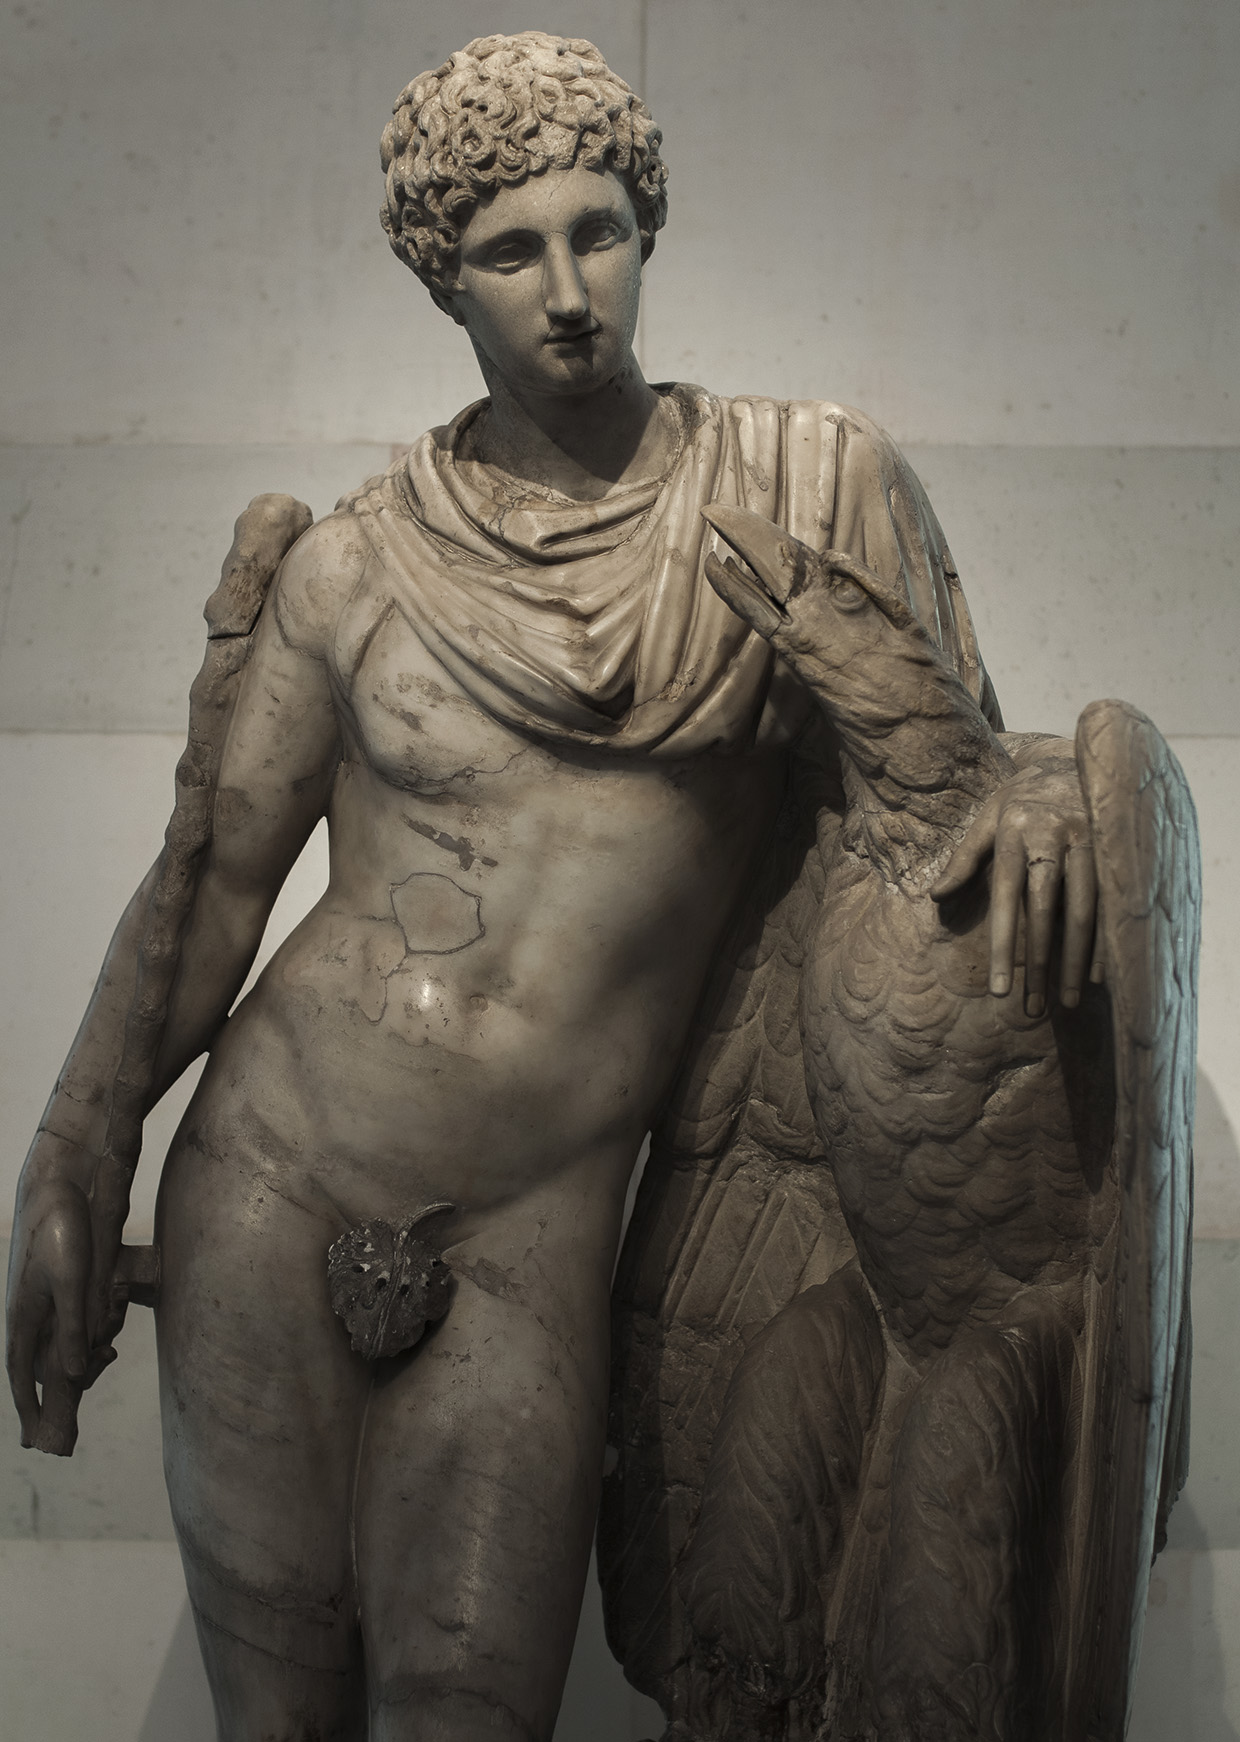 Ganymede and the Eagle. Marble. Roman copy of the 2nd cent. CE after a Greek original from the Praxiteles school, 3rd century BCE. Inv. No. A 950. Saint Petersburg, The State Hermitage Museum